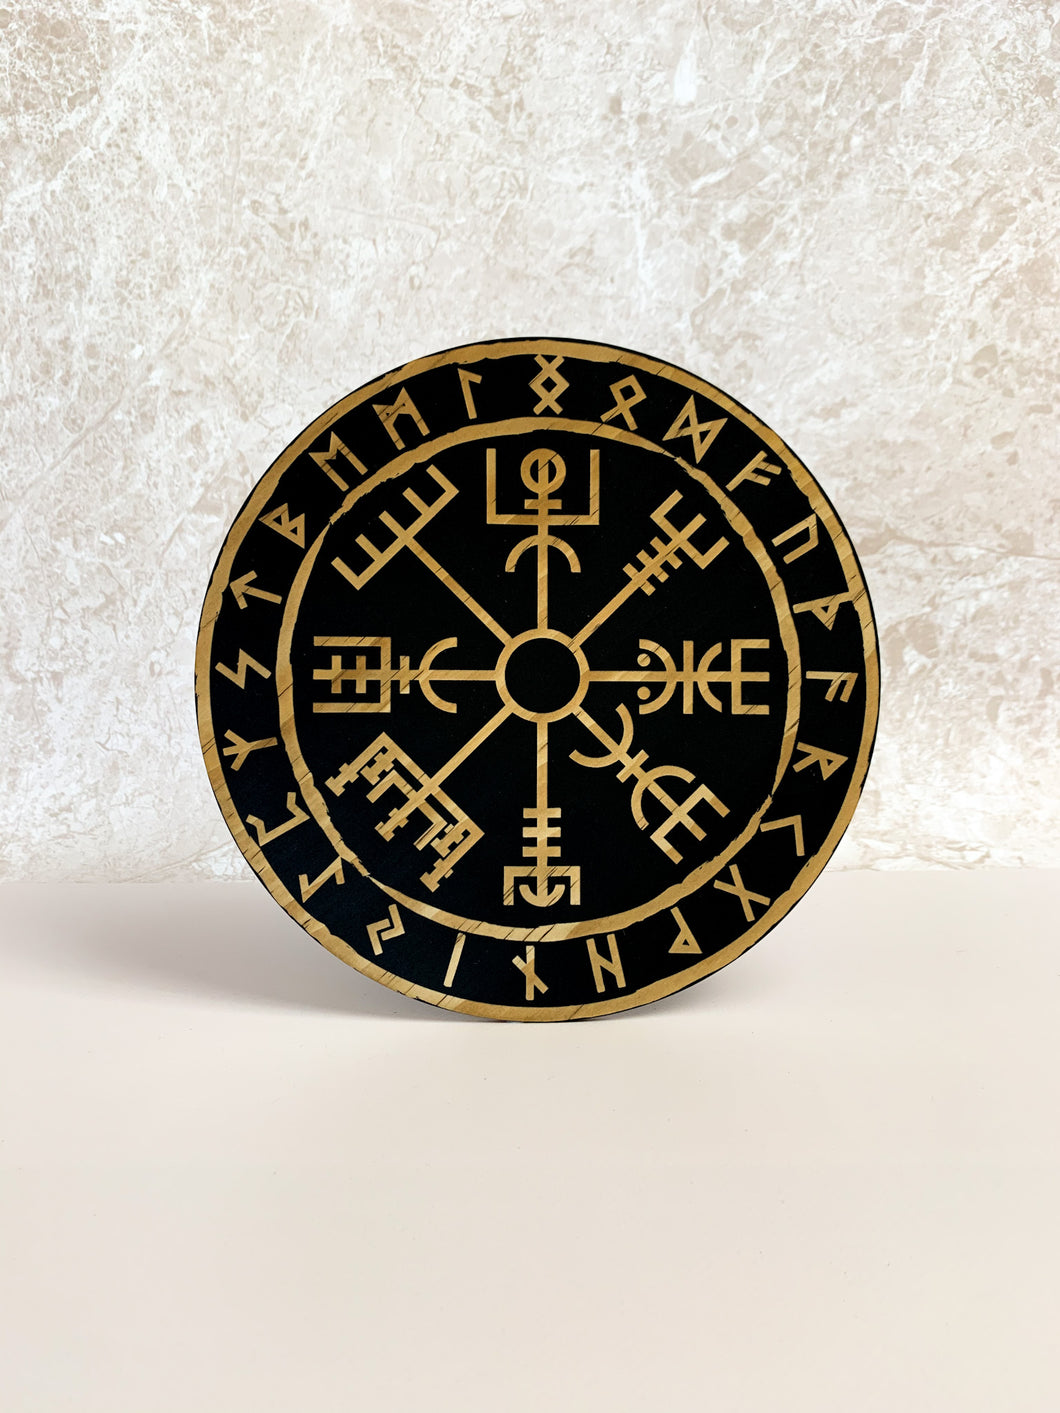 Vegvisir 'Viking Compass' By Yiska Designs - Blackened Woodgrain